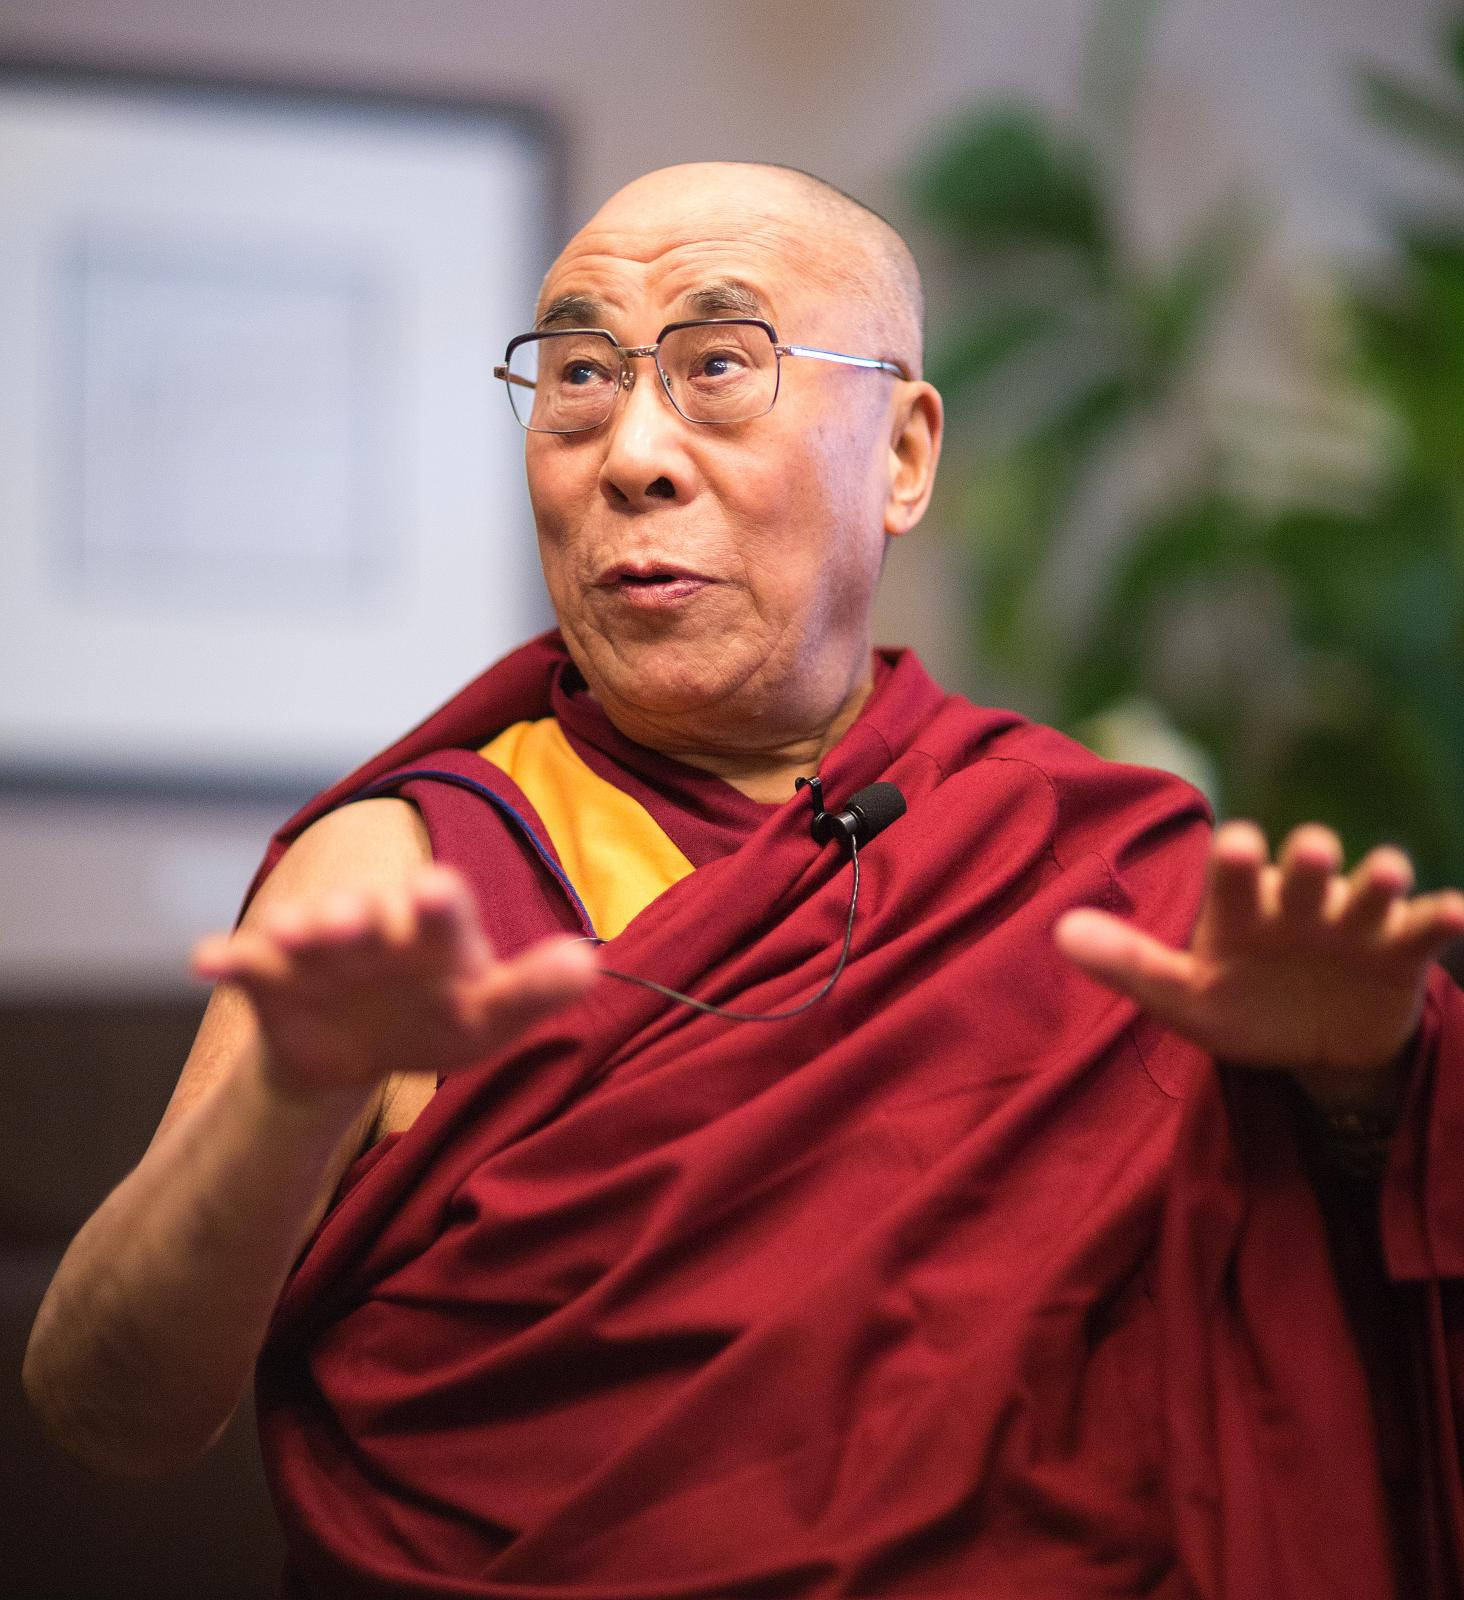 Dalai lama (2012) by Christopher Michel